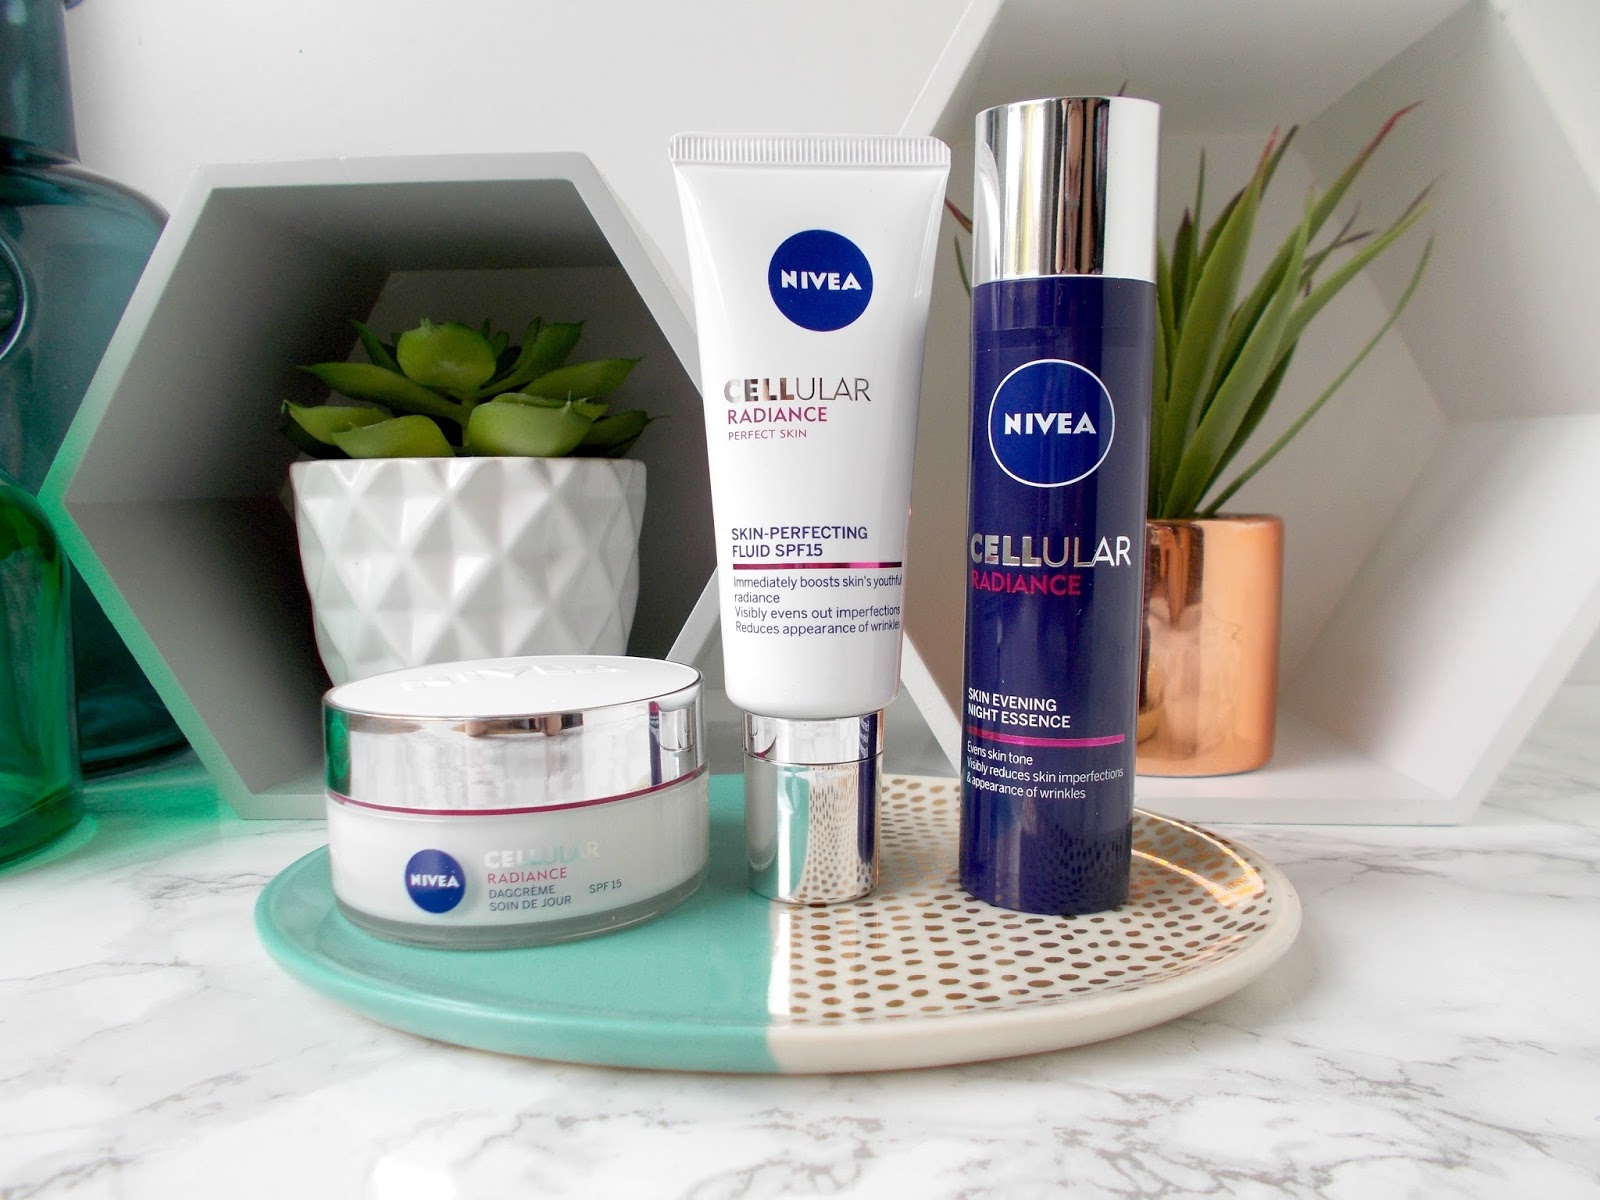 Nivea Cellular Radiance range review